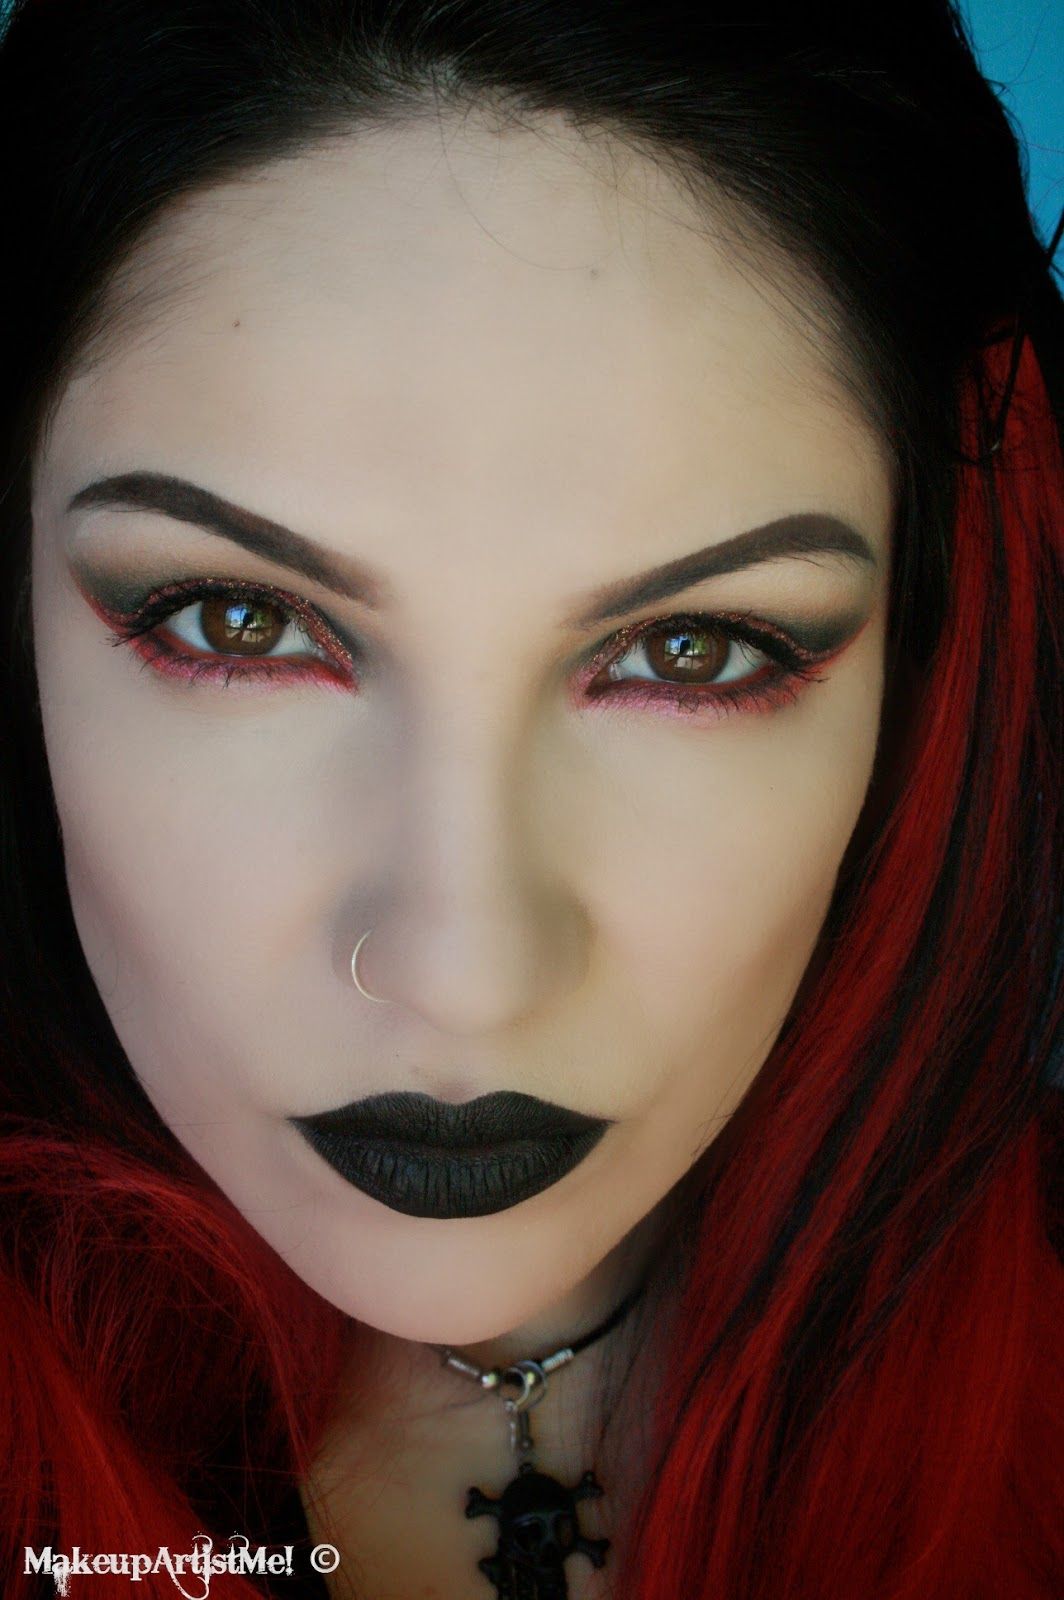 Beauty Make Up: Make-up Artist Me!: My Goth! Makeup Tutorial